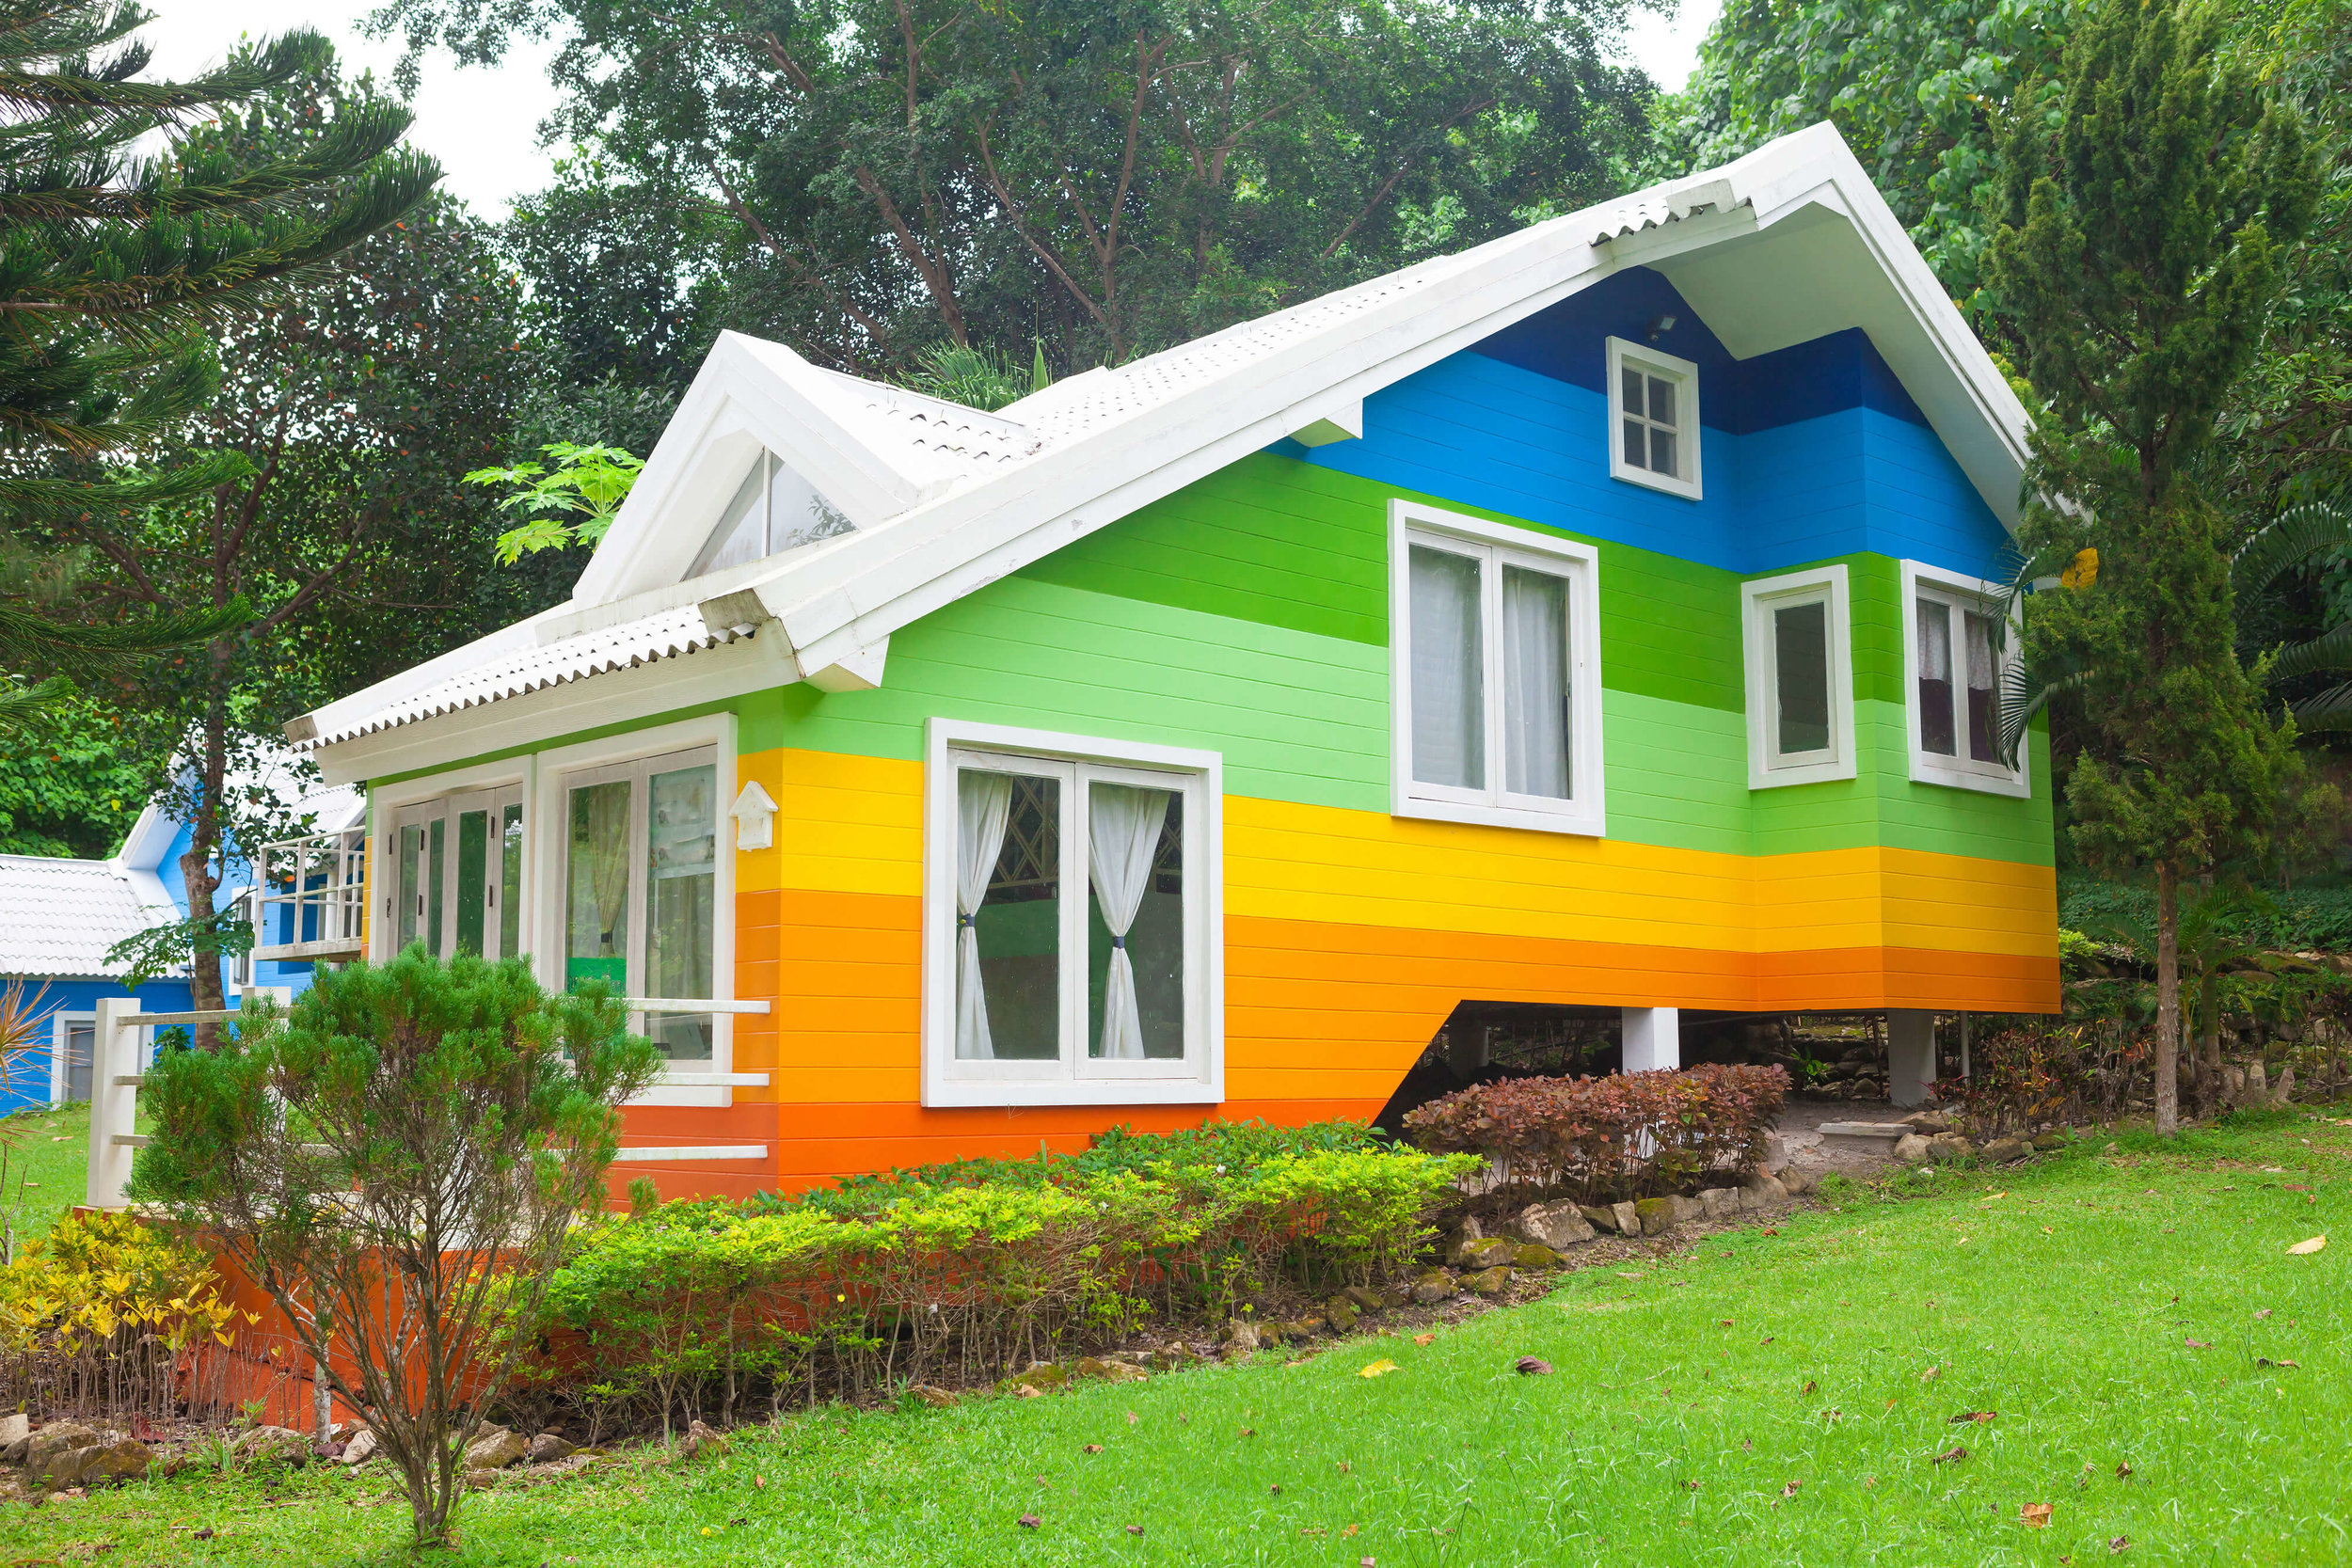 While you may love it, potential buyers may avoid your home if the exterior is too different from their taste.